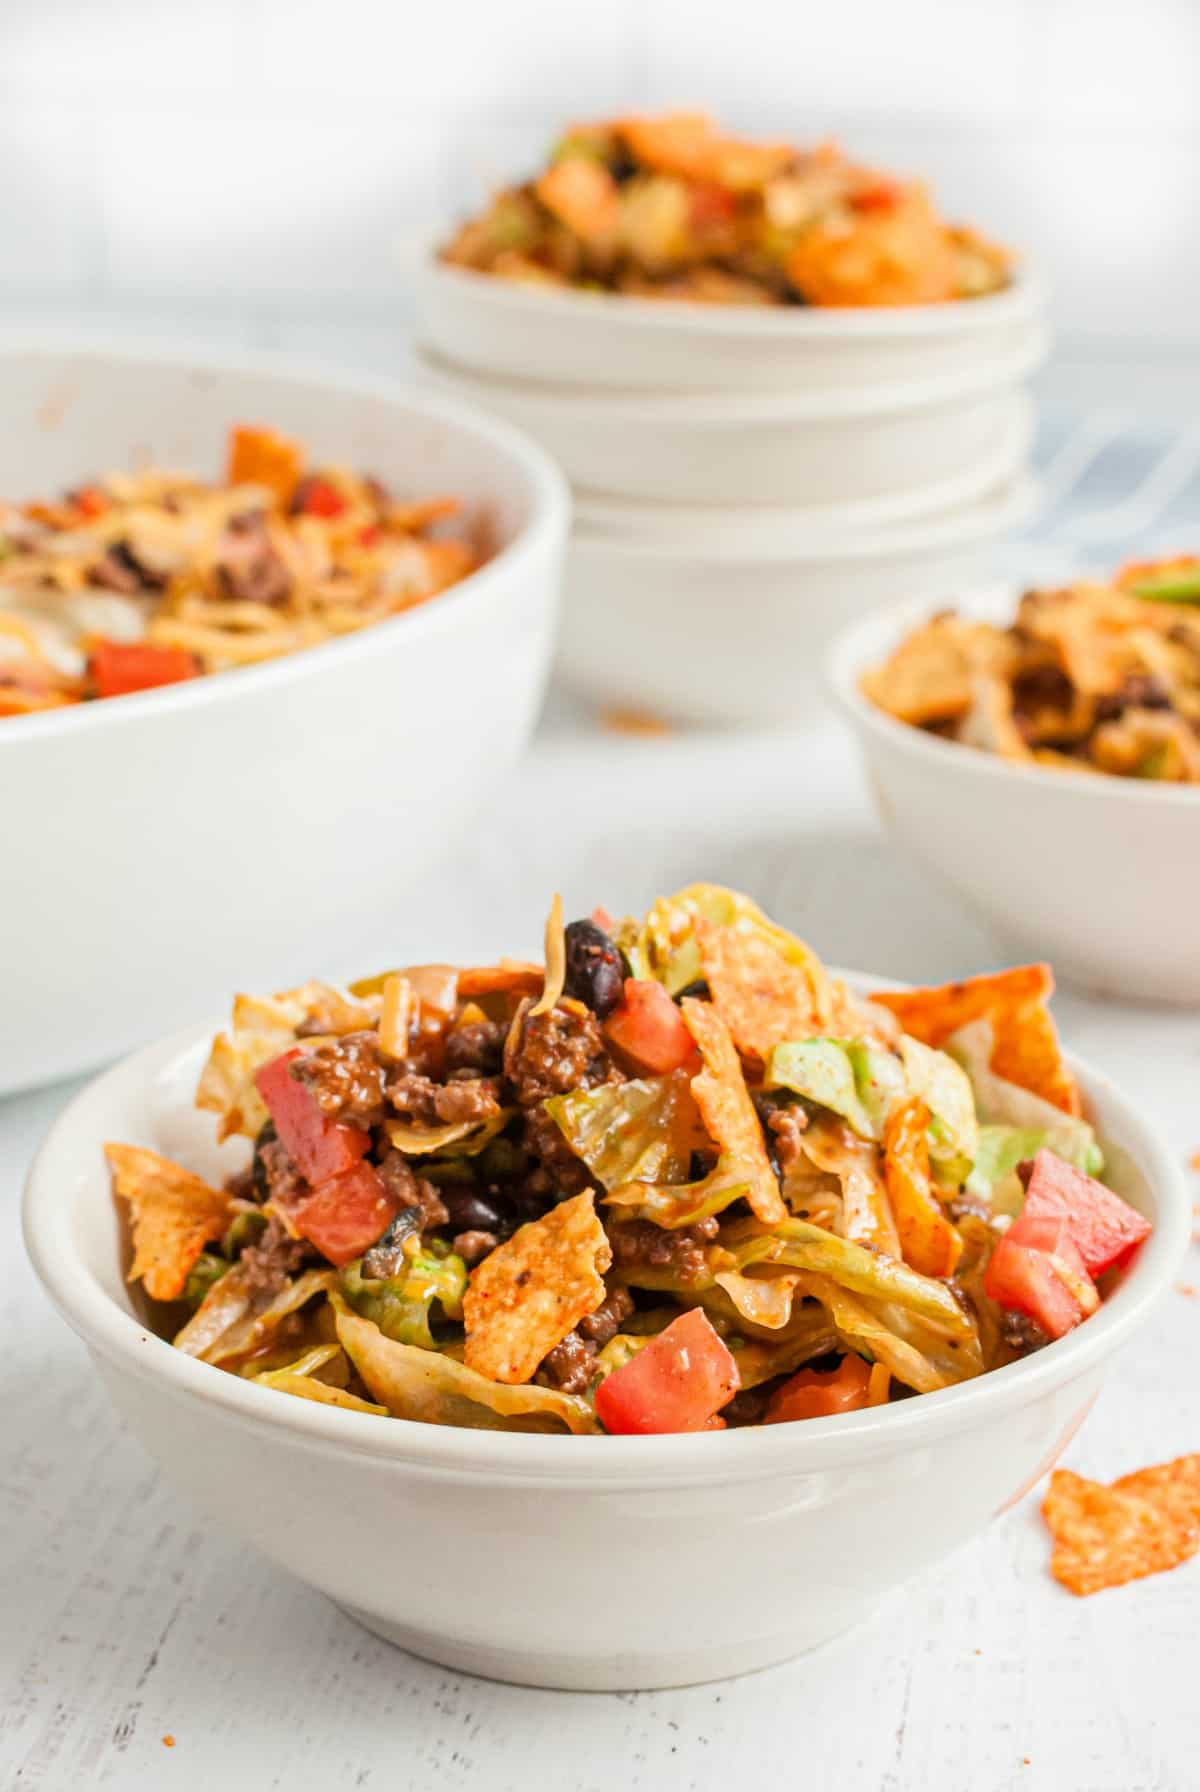 Taco salad in white dinner bowls topped with doritos.